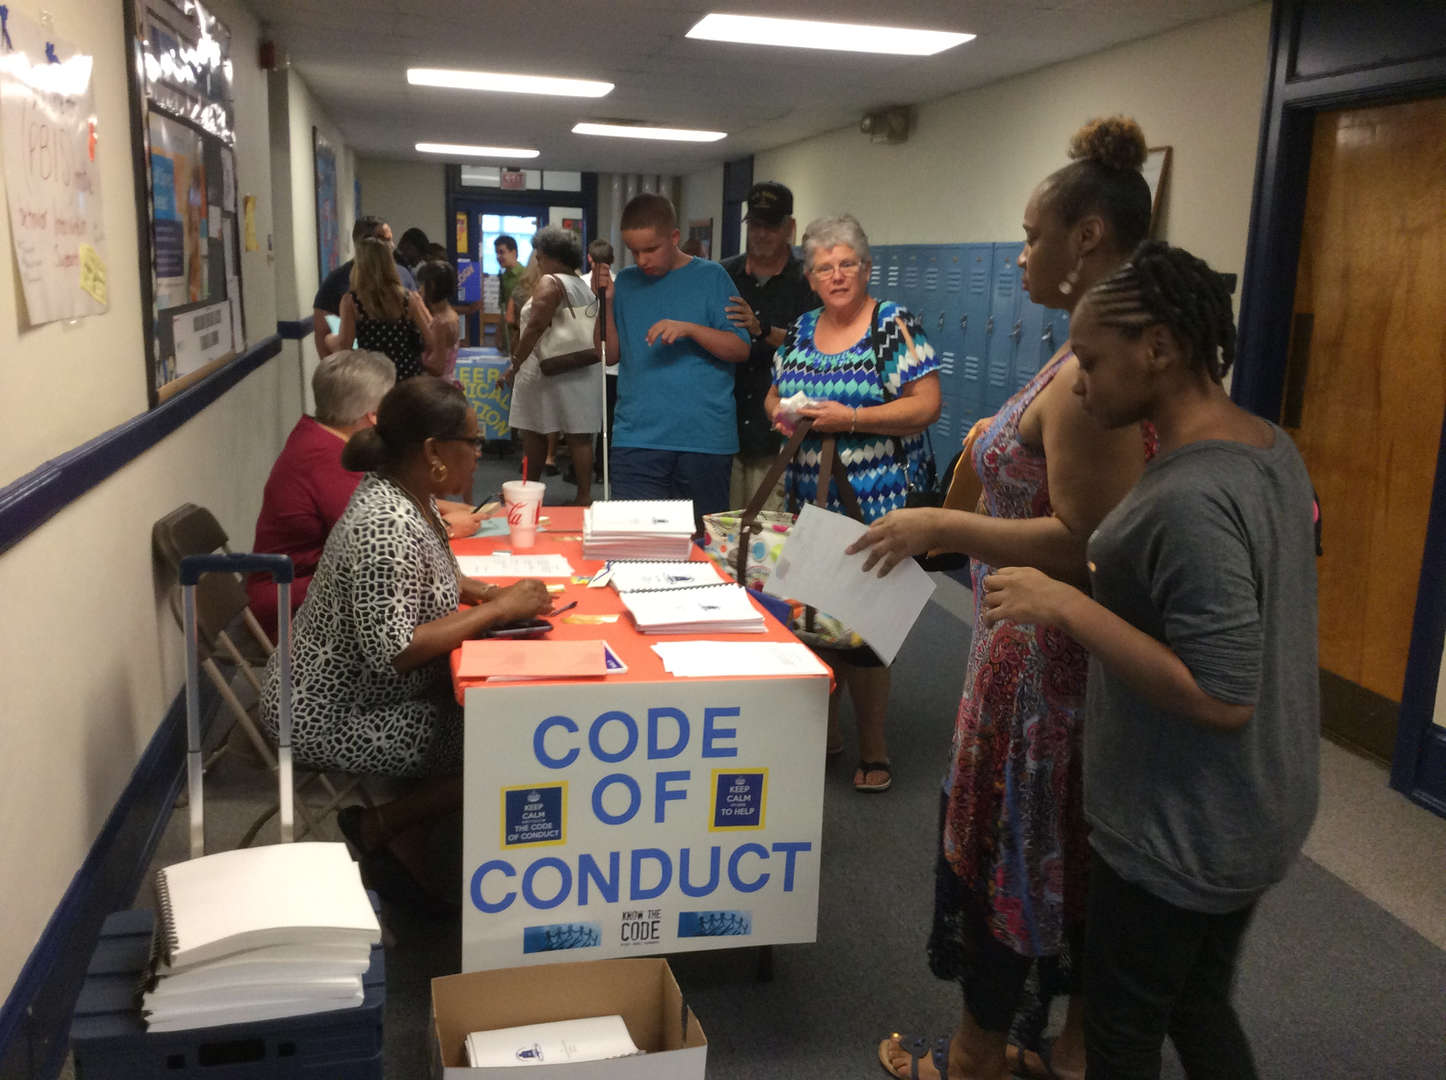 Students stop to pick up copies of the Code of Conduct before visiting other stations.